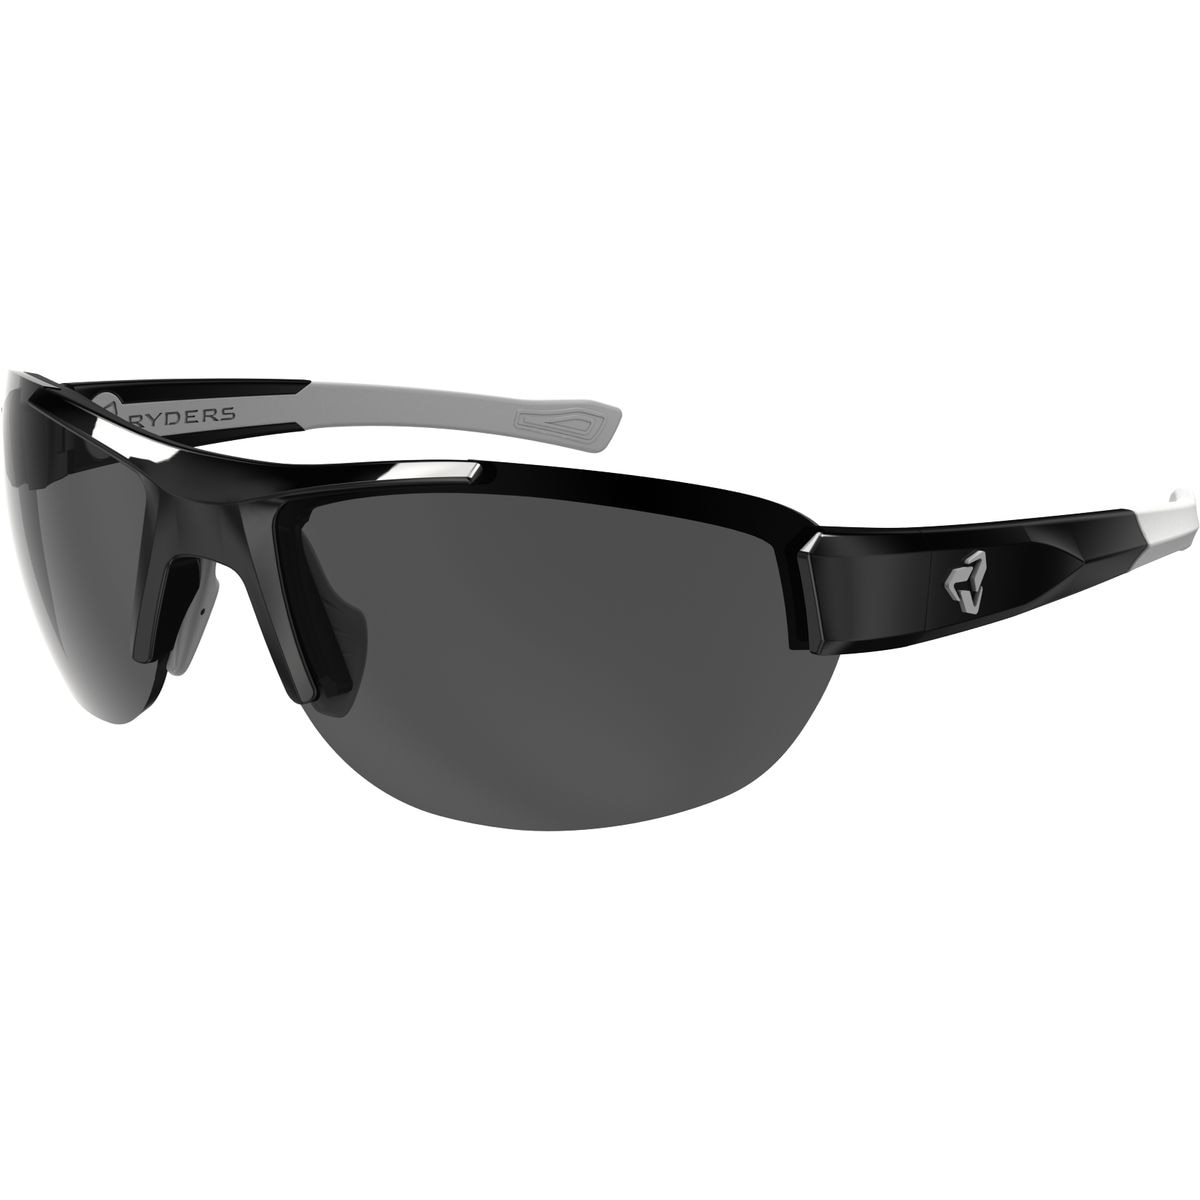 Ryders Eyewear Crankum Sunglasses Men's